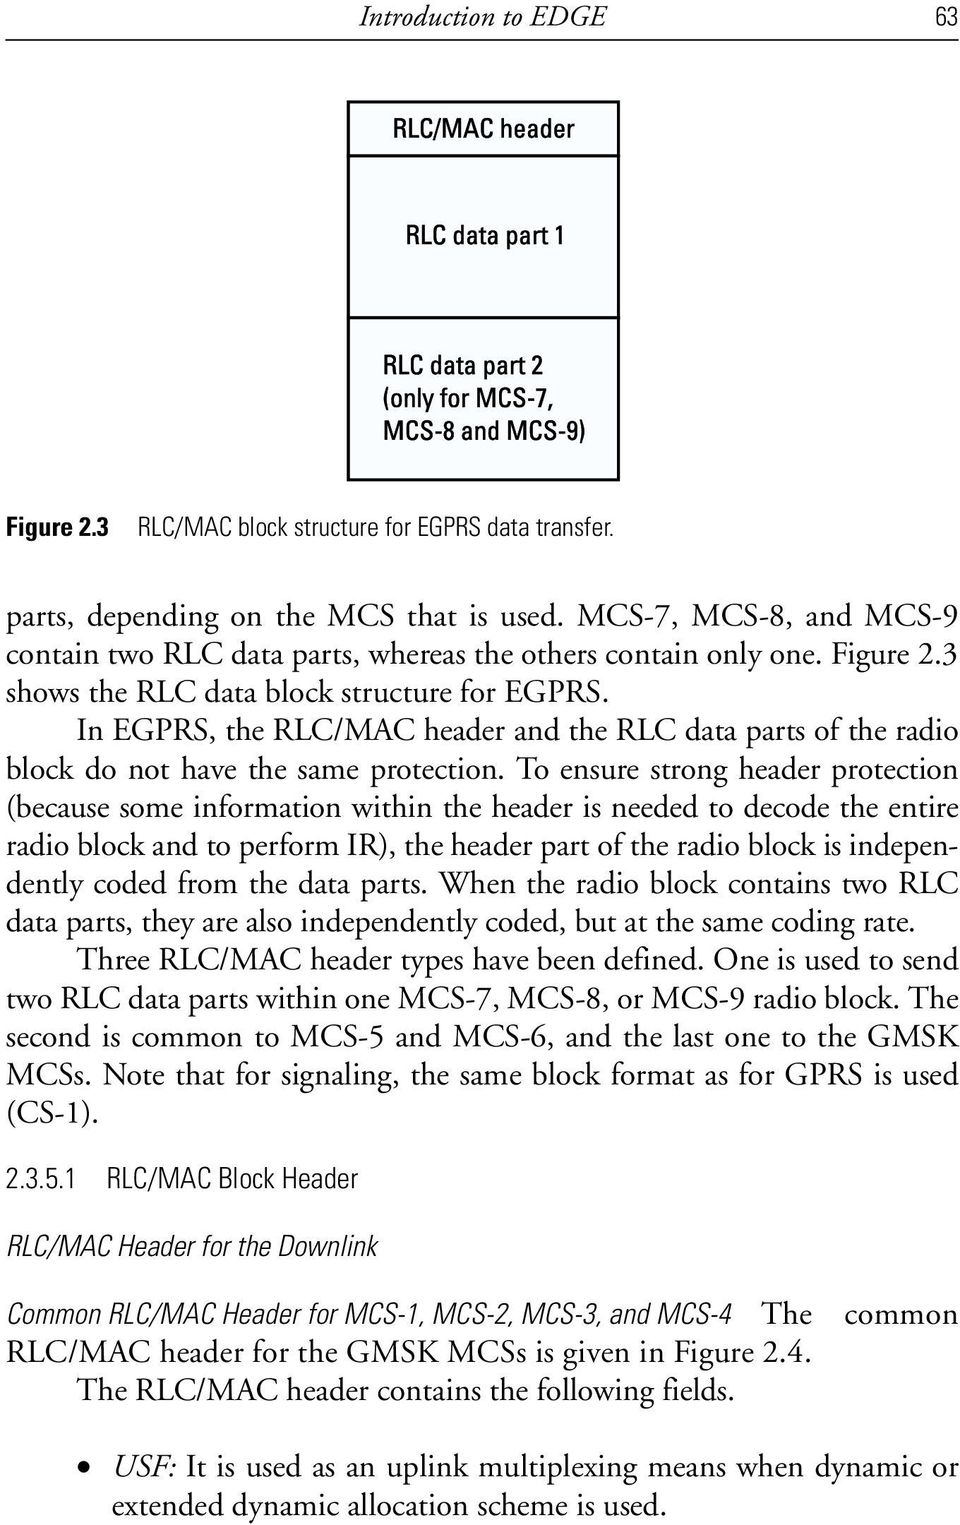 In EGPRS, the RLC/MAC header and the RLC data parts of the radio block do not have the same protection.